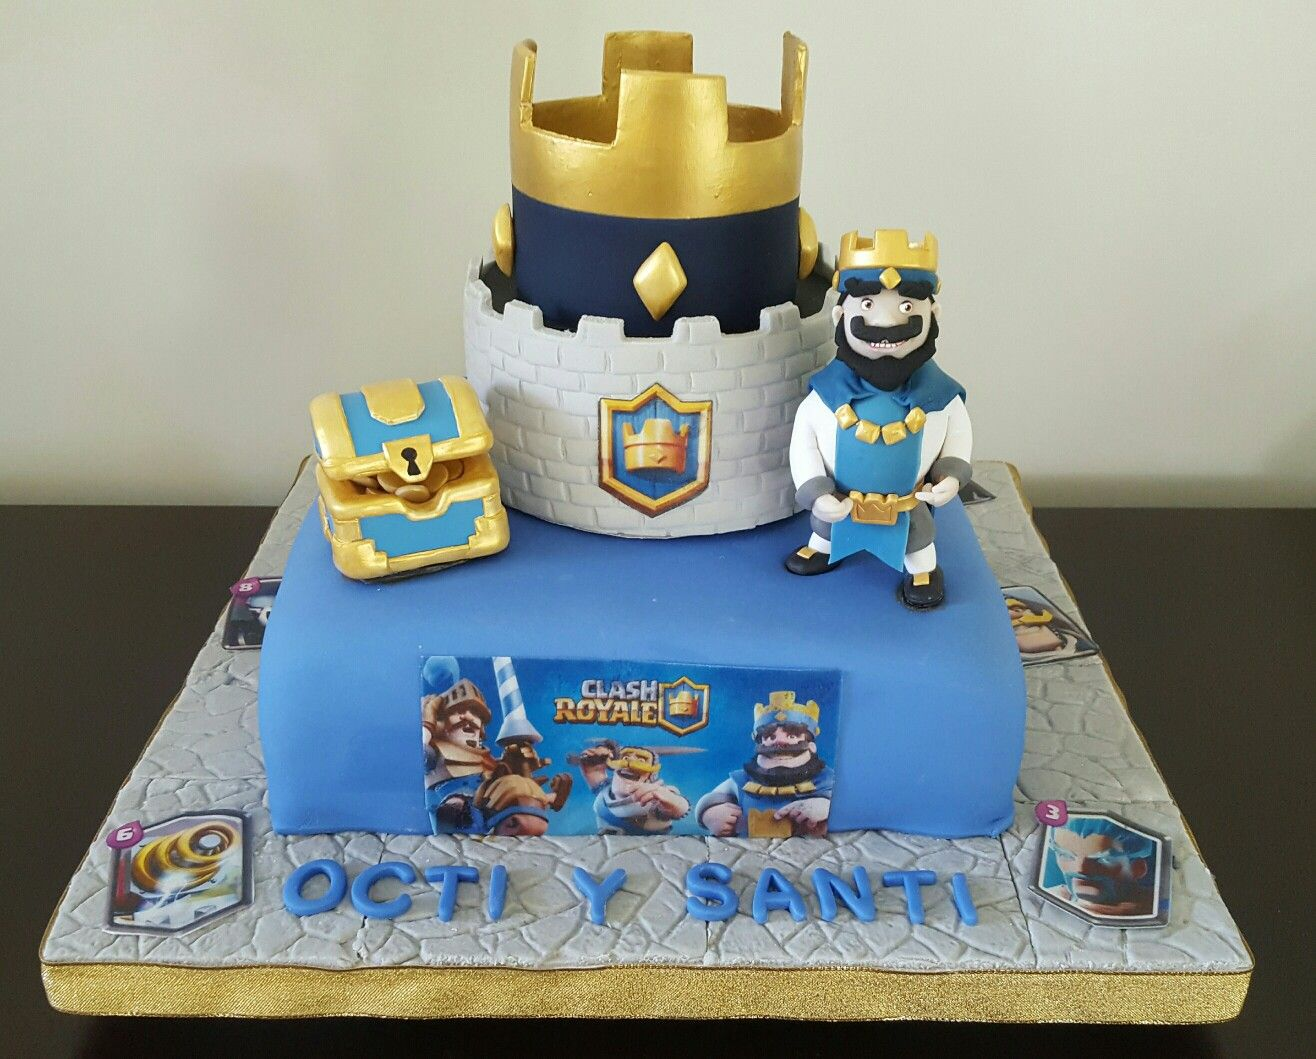 Pasteles Aniversarios Pictures To Pin On Pinterest: Torta Clash Royale